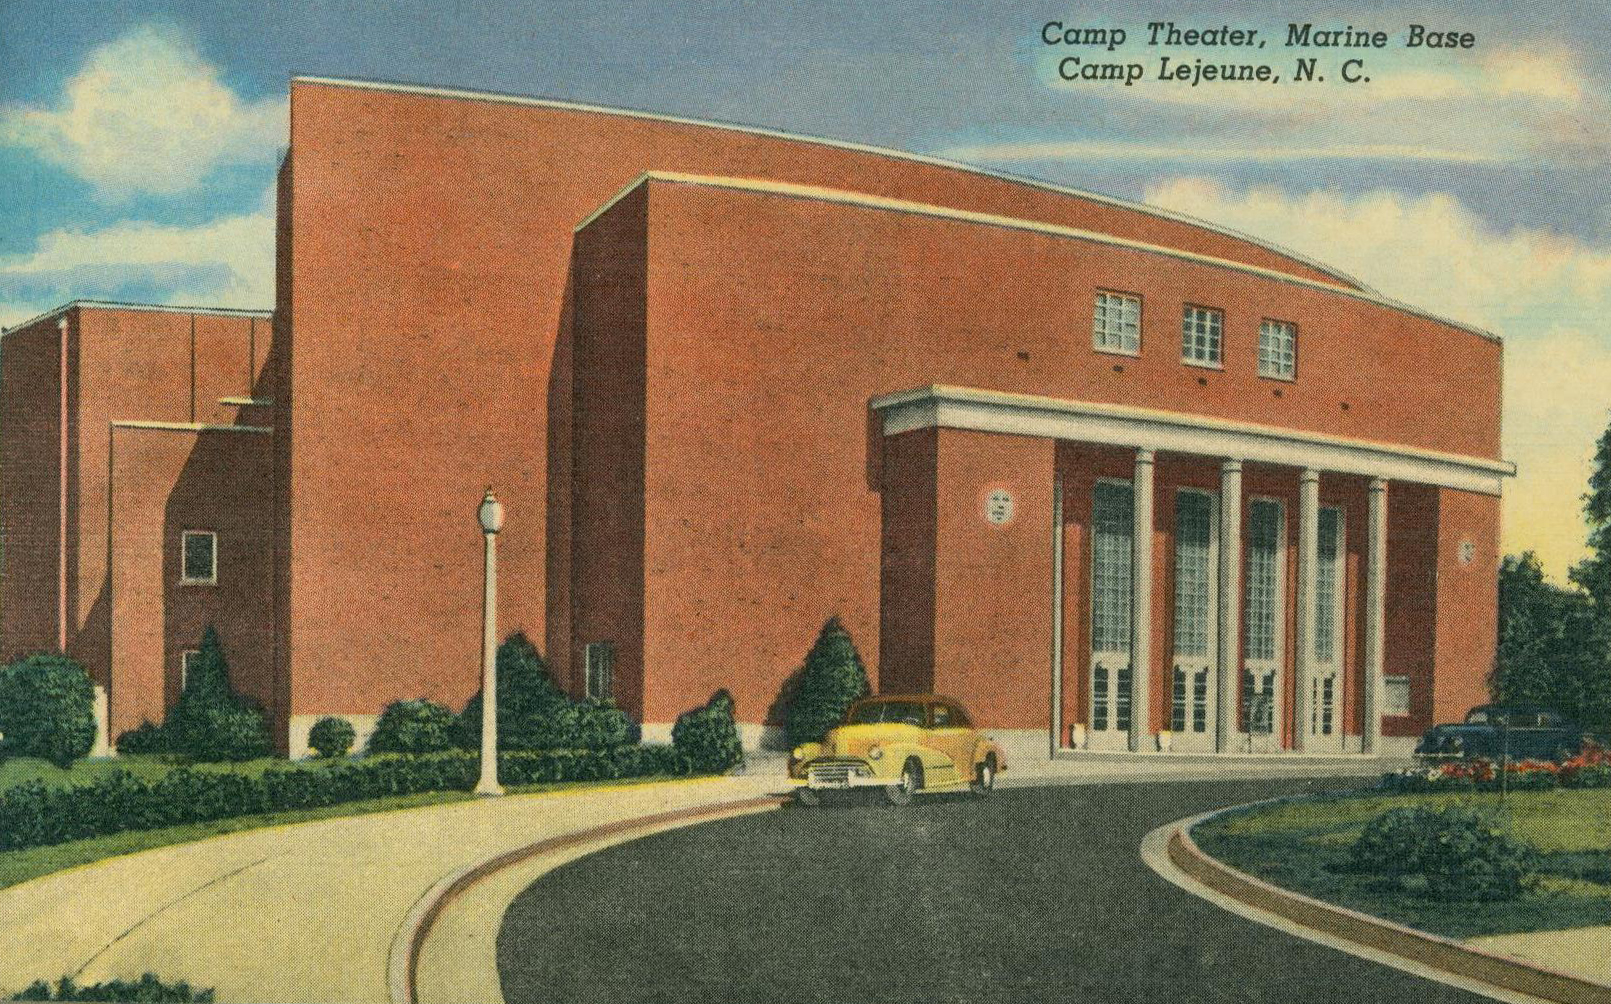 Historic Postcard Featuring The Camp Theater At Marine Corps Base Camp Lejeune Us Marine Corps